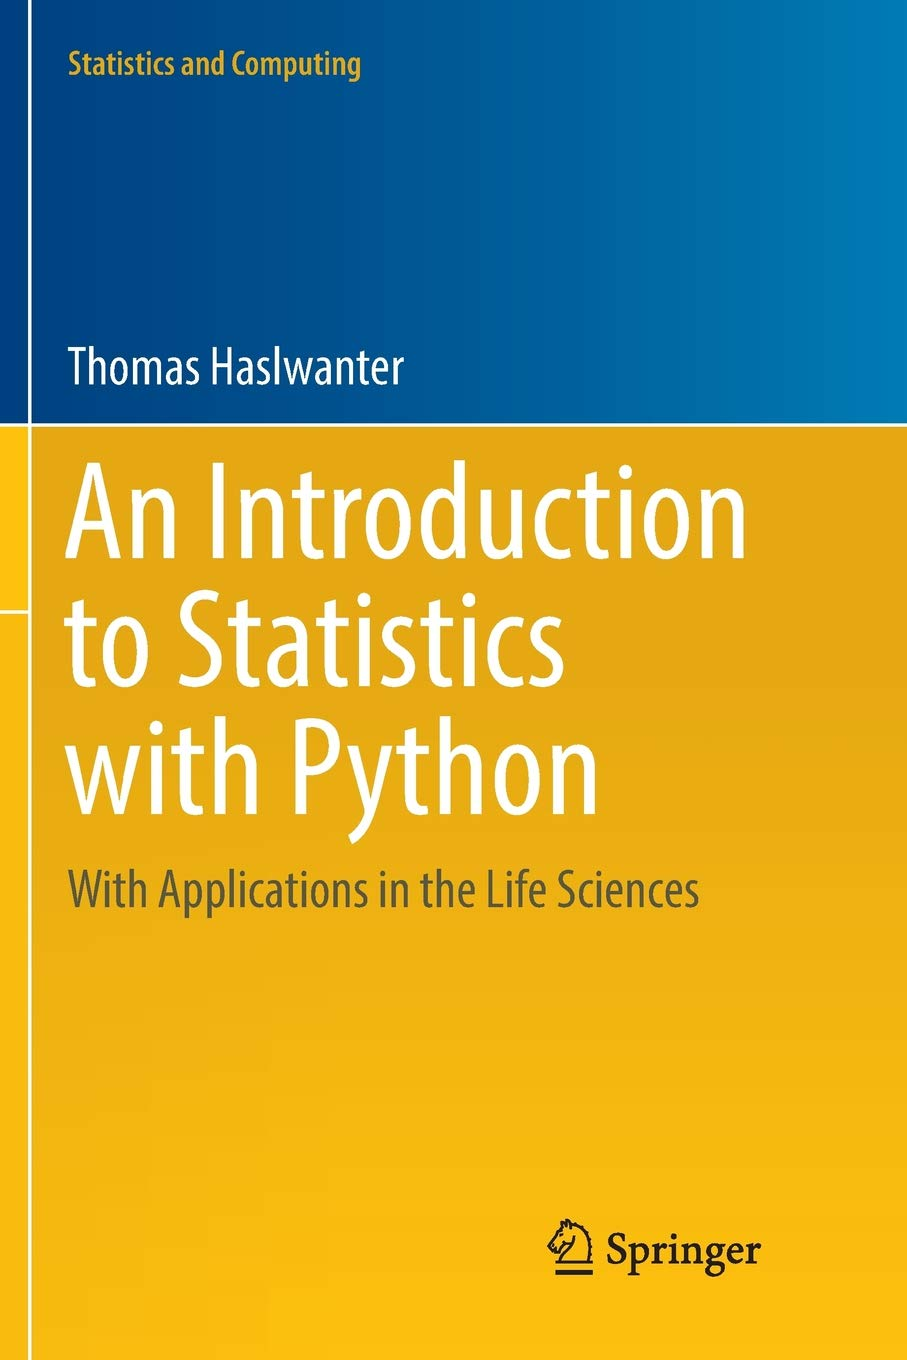 An Introduction to Statistics with Python: With Applications in the Life Sciences (Statistics and Computing) pdf